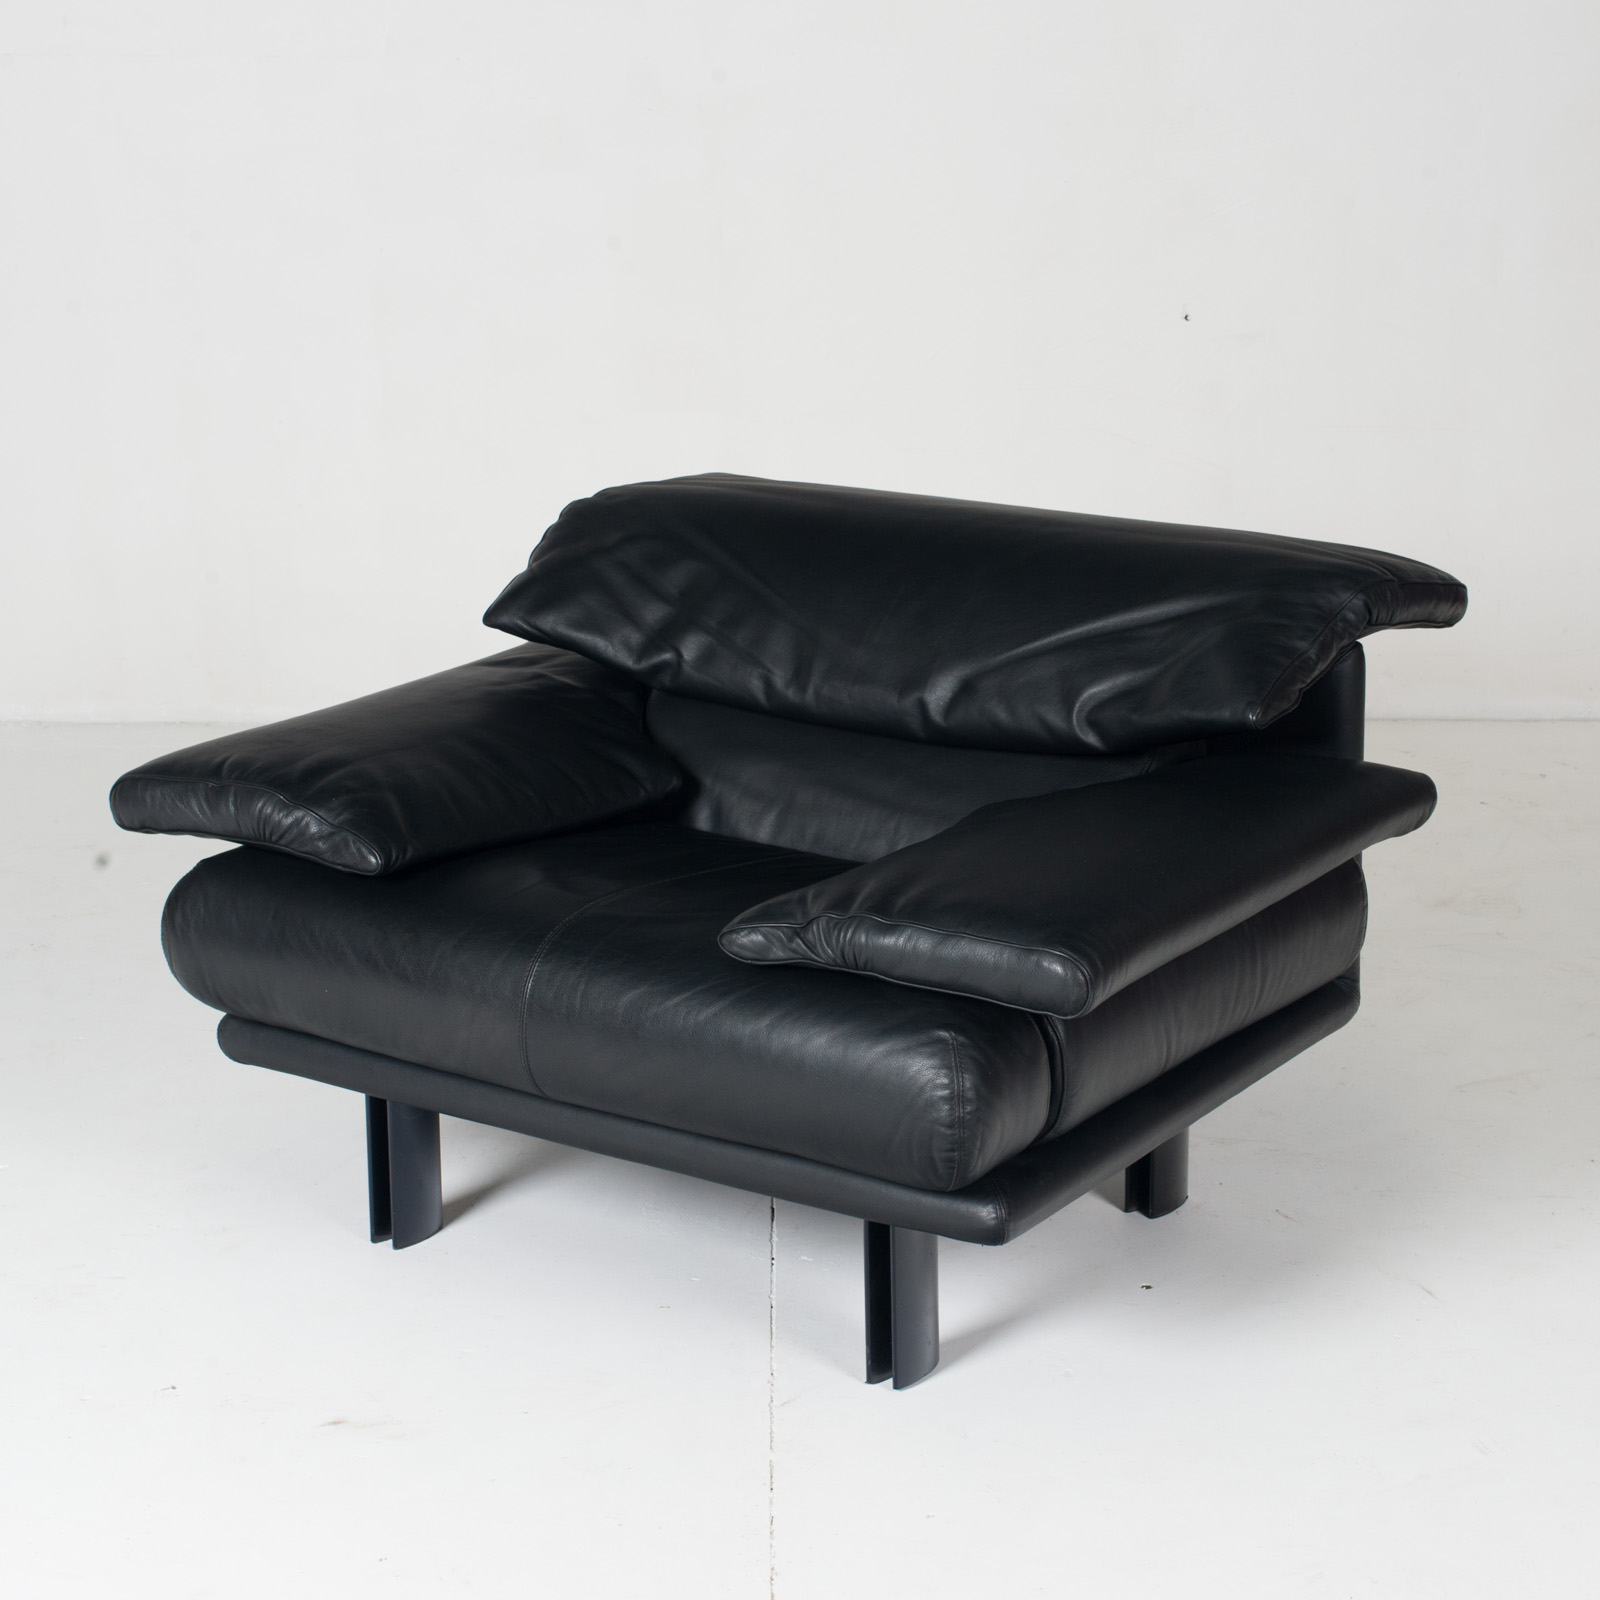 Alanda Armchair By Paolo Piva For B&b Italia In Black Leather, 1980s, Italy 4